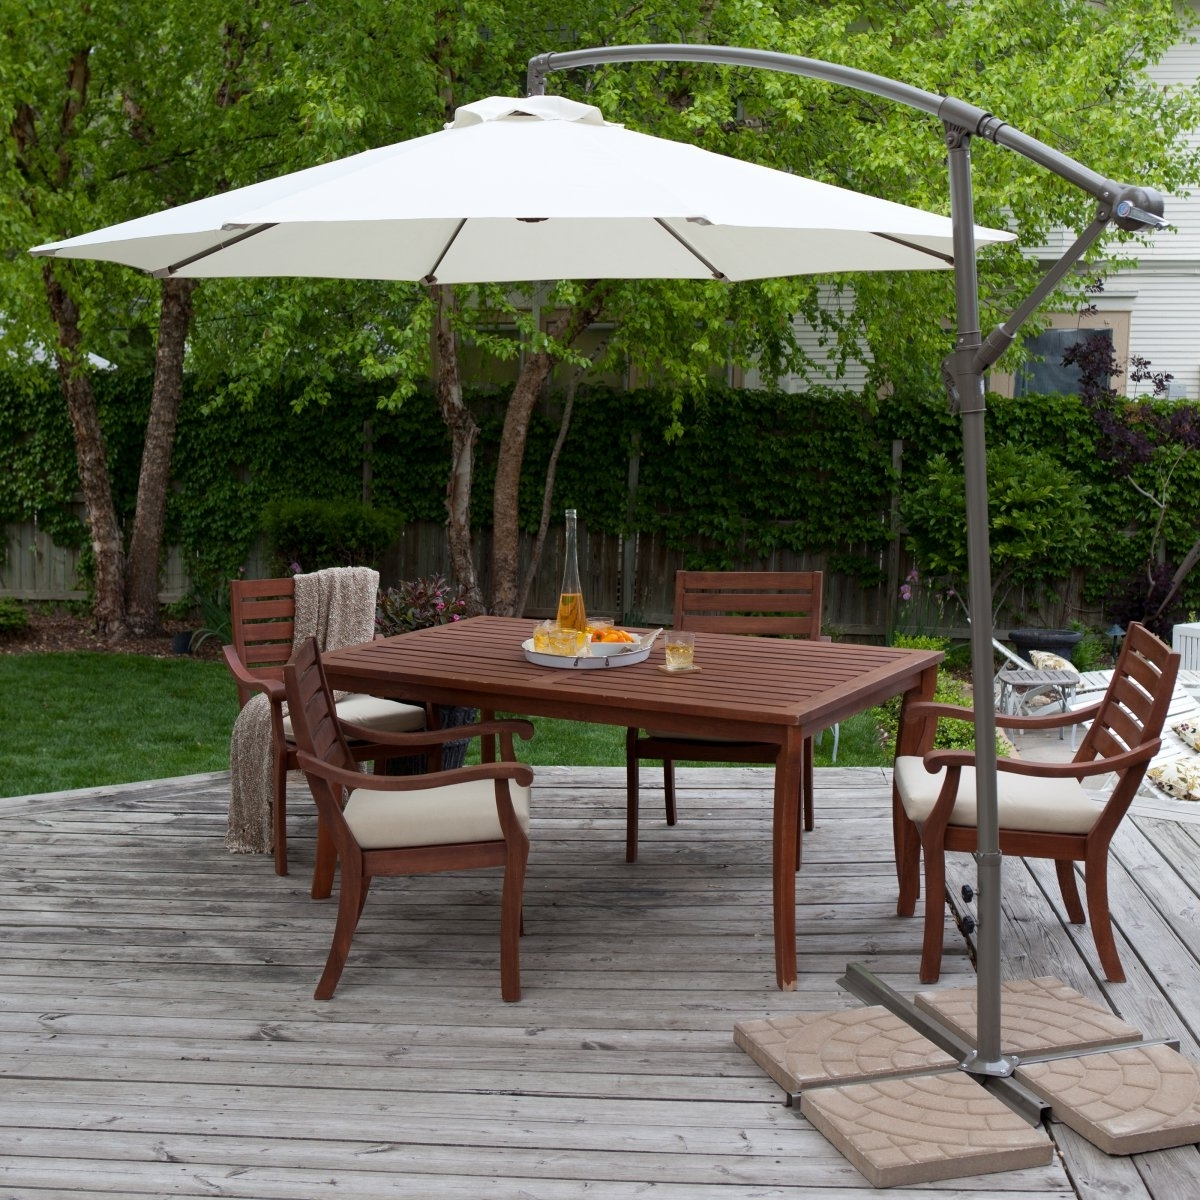 2018 Patio Tables With Umbrellas Intended For The Patio Table Umbrella For Comfort Gathering — Mistikcamping Home (View 7 of 20)